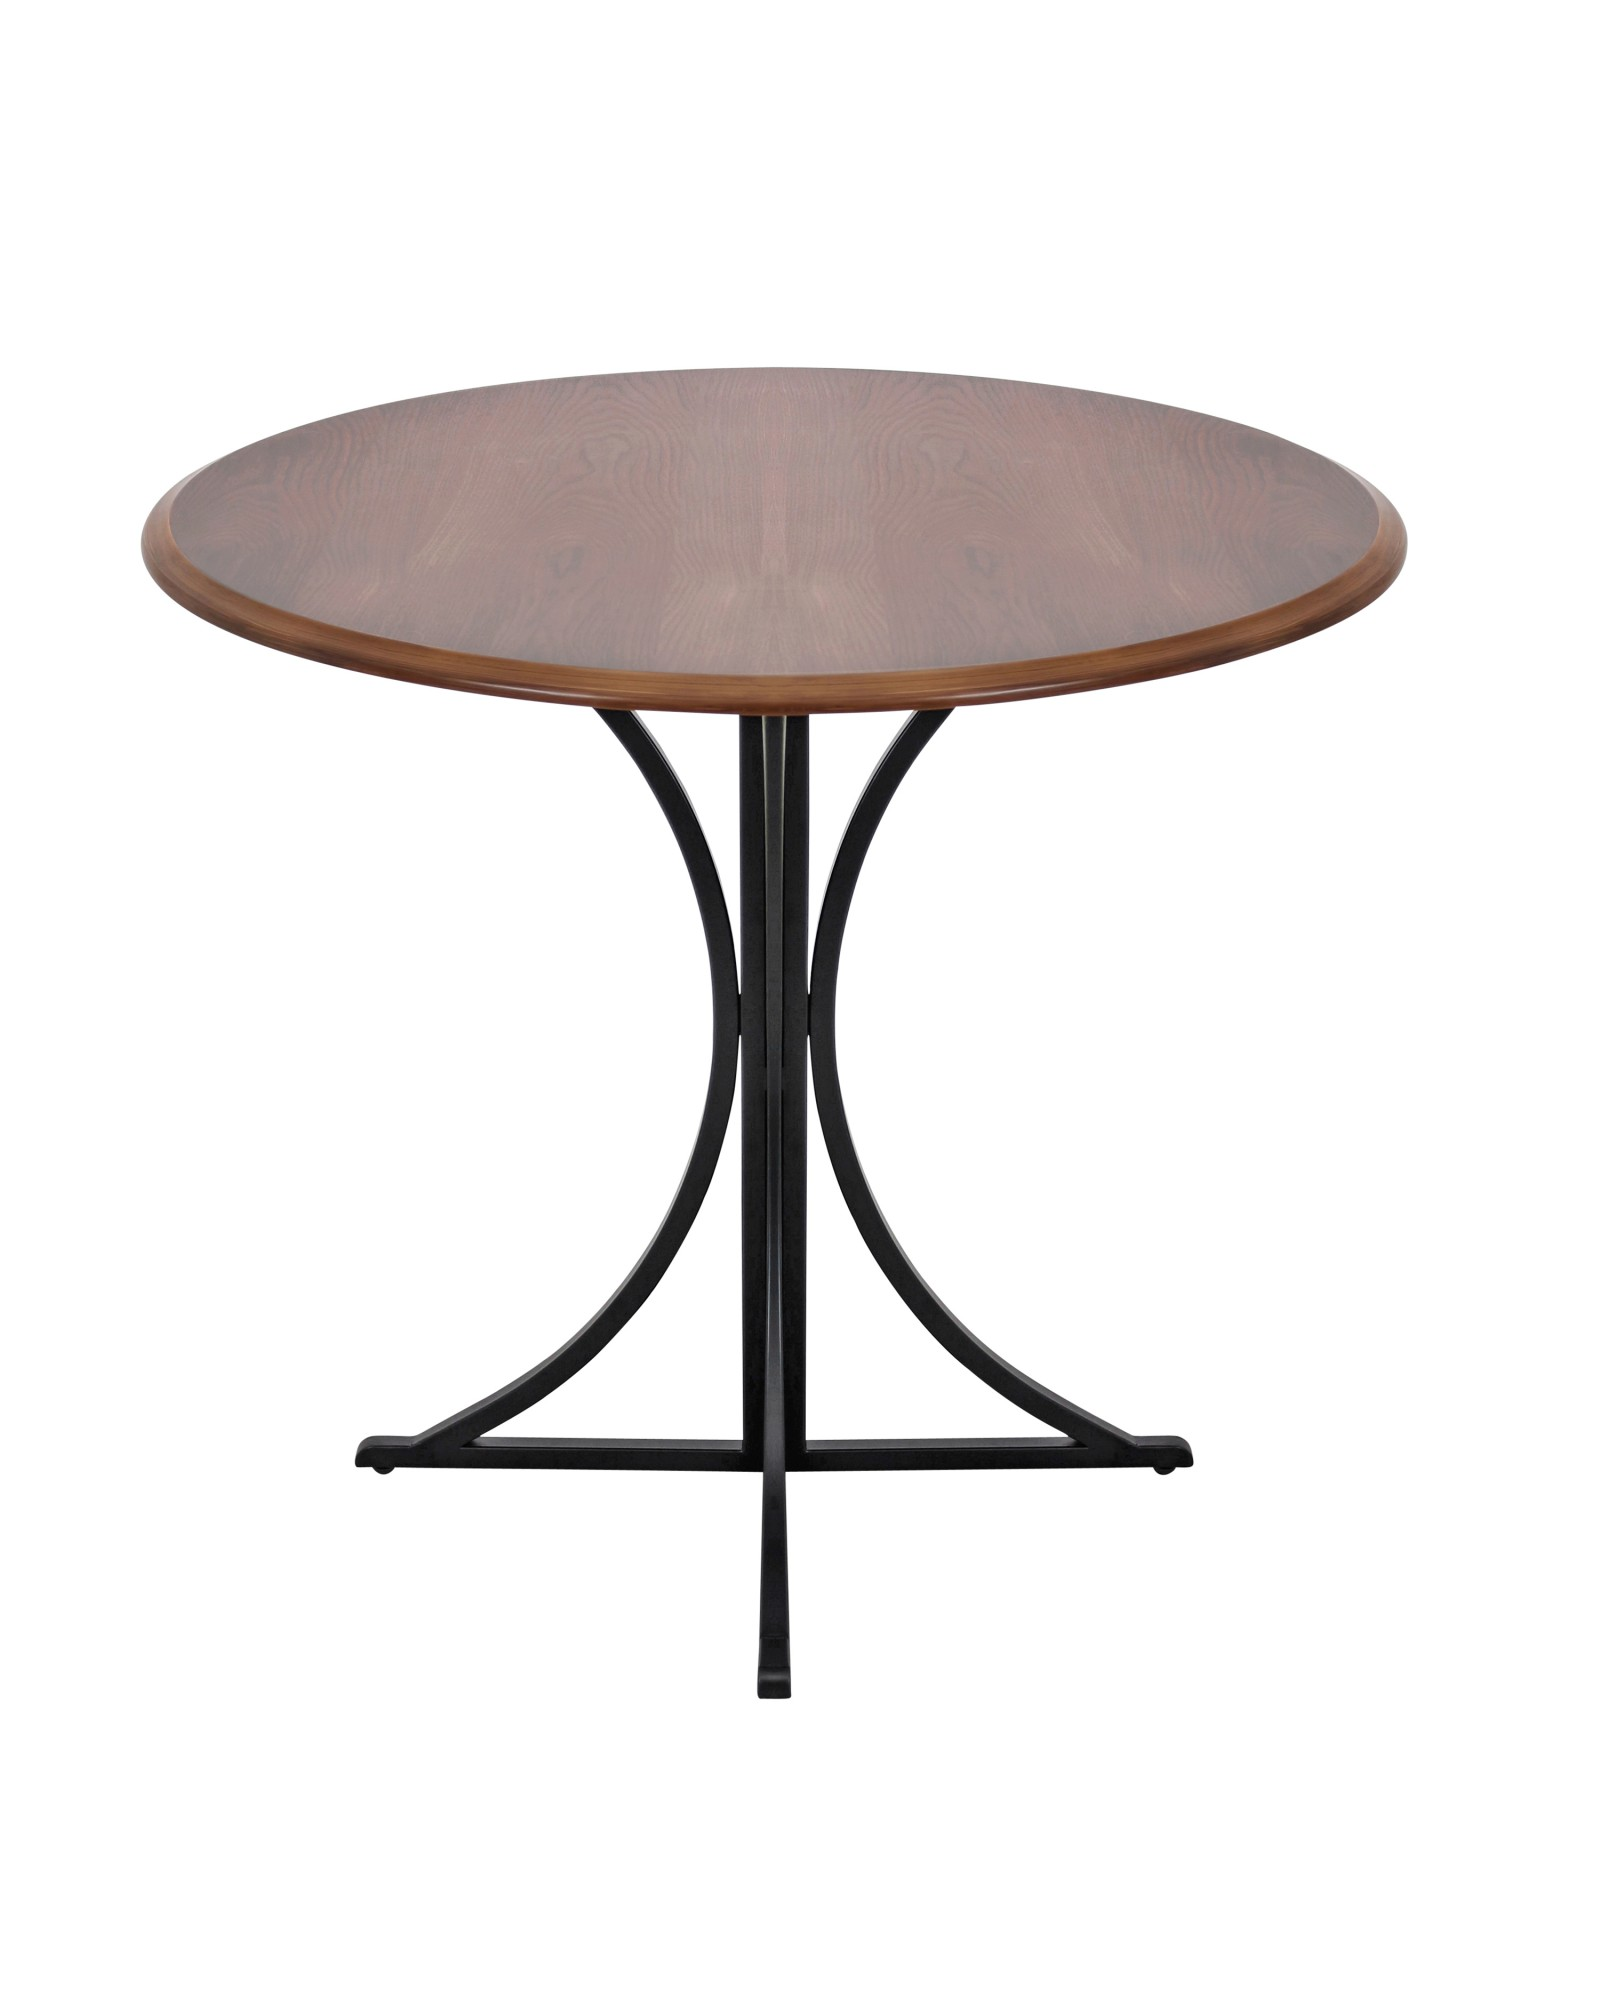 Boro Contemporary Dining Table in Walnut and Black